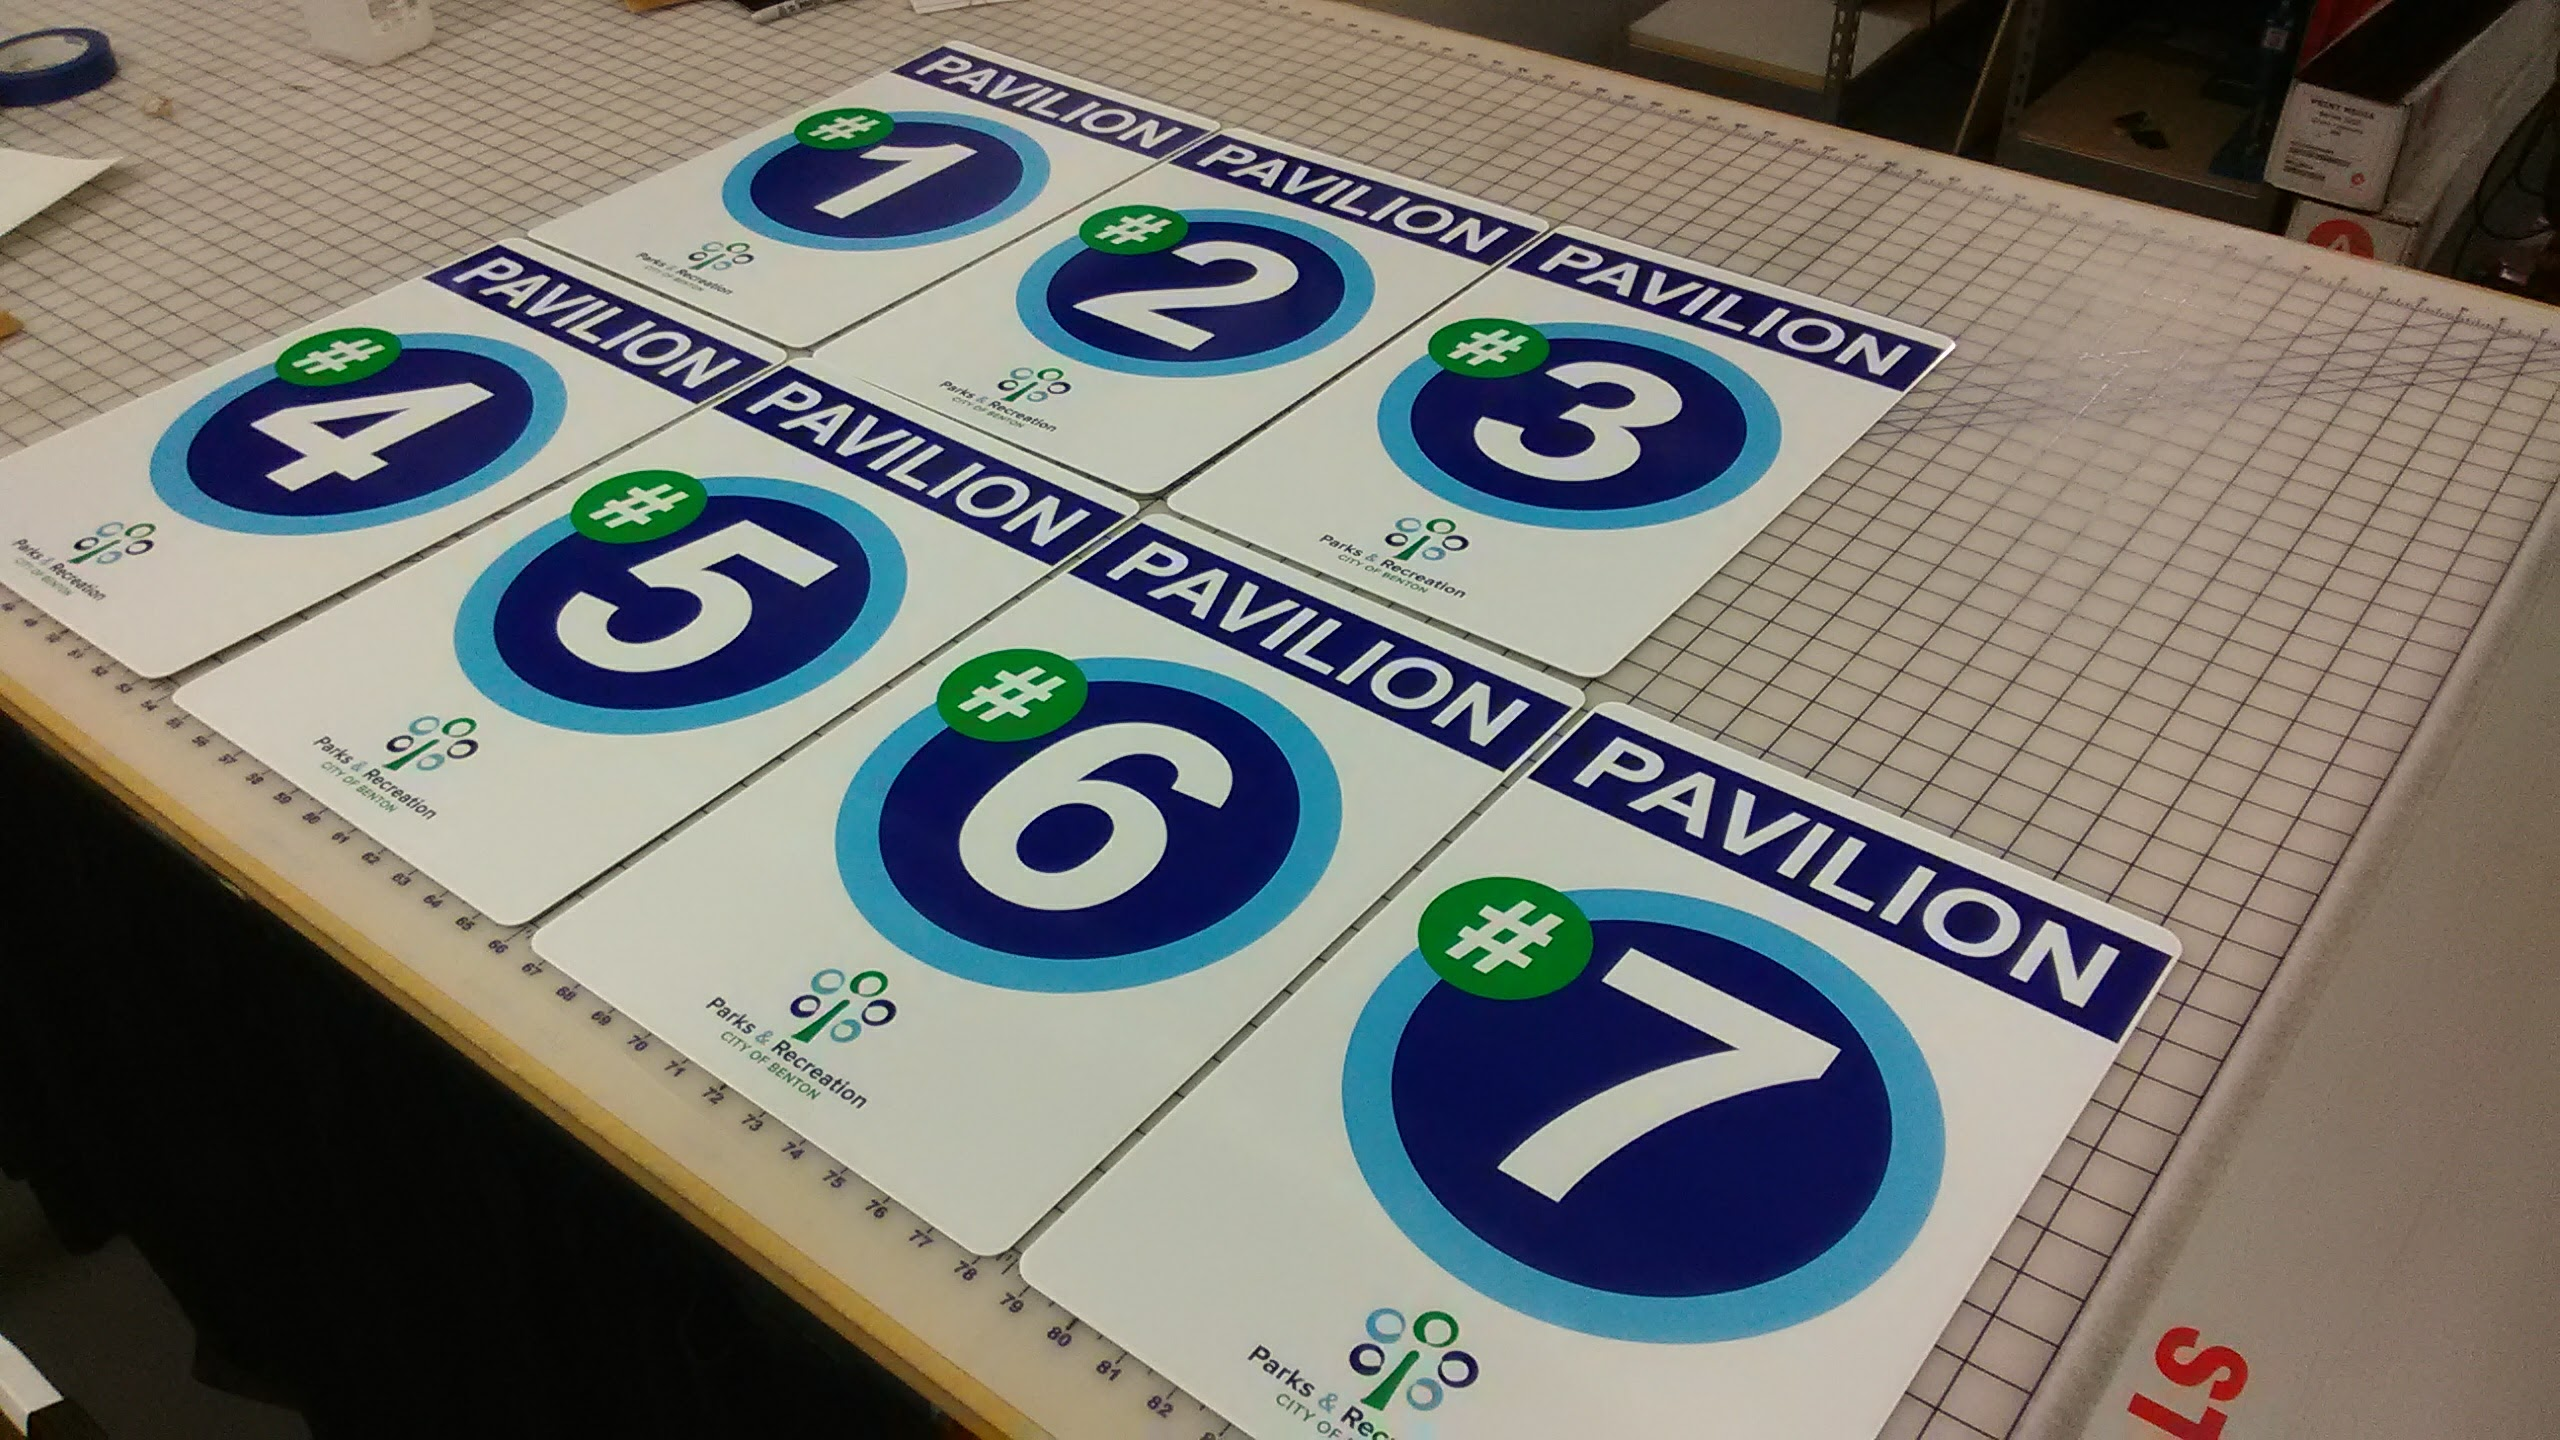 Pavilion Signs File